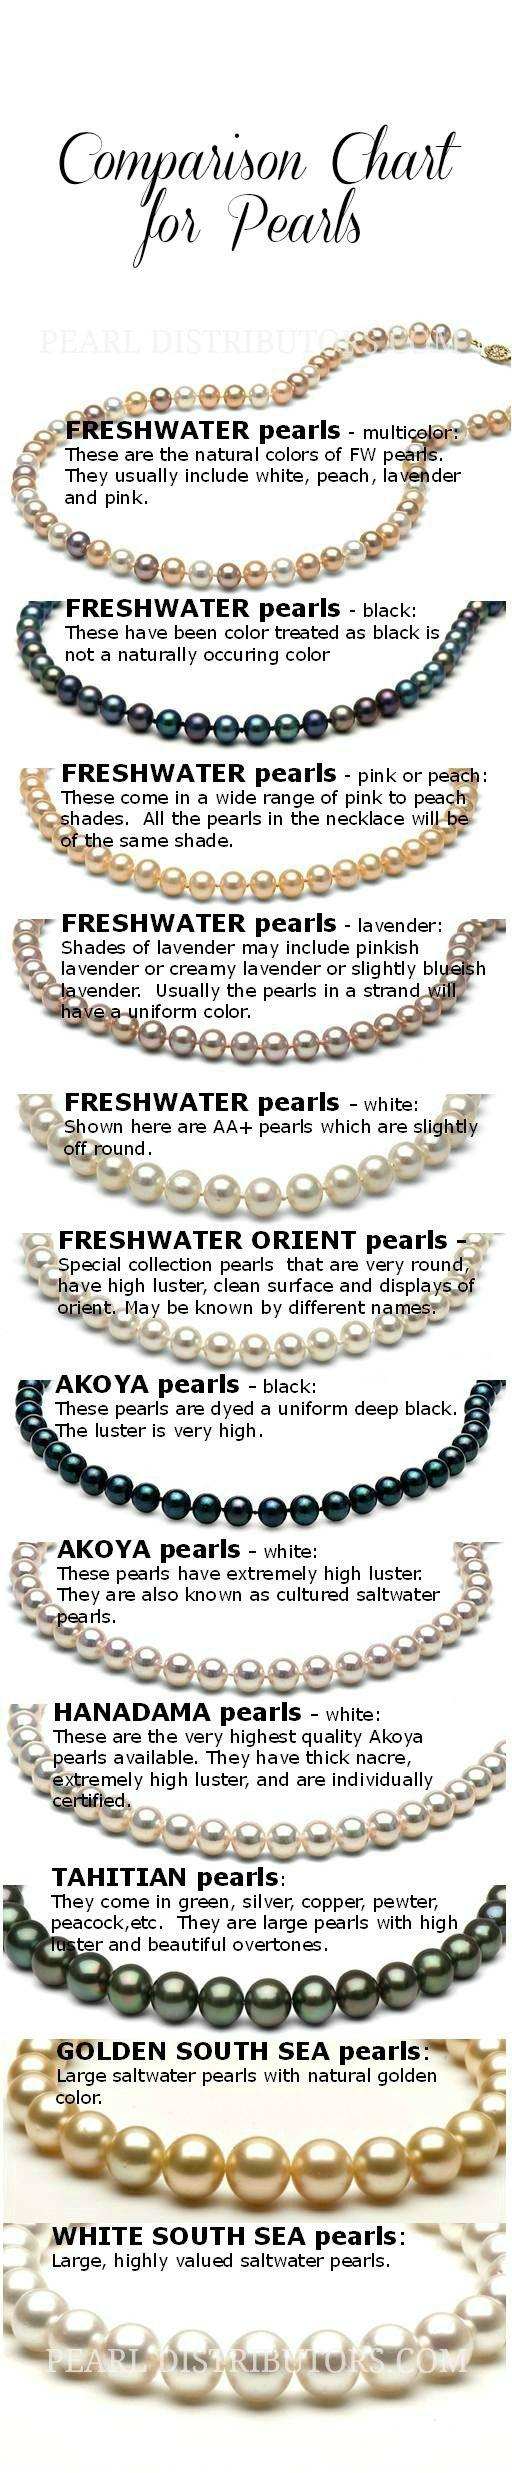 Compare pearl types with this easy comparison chart.